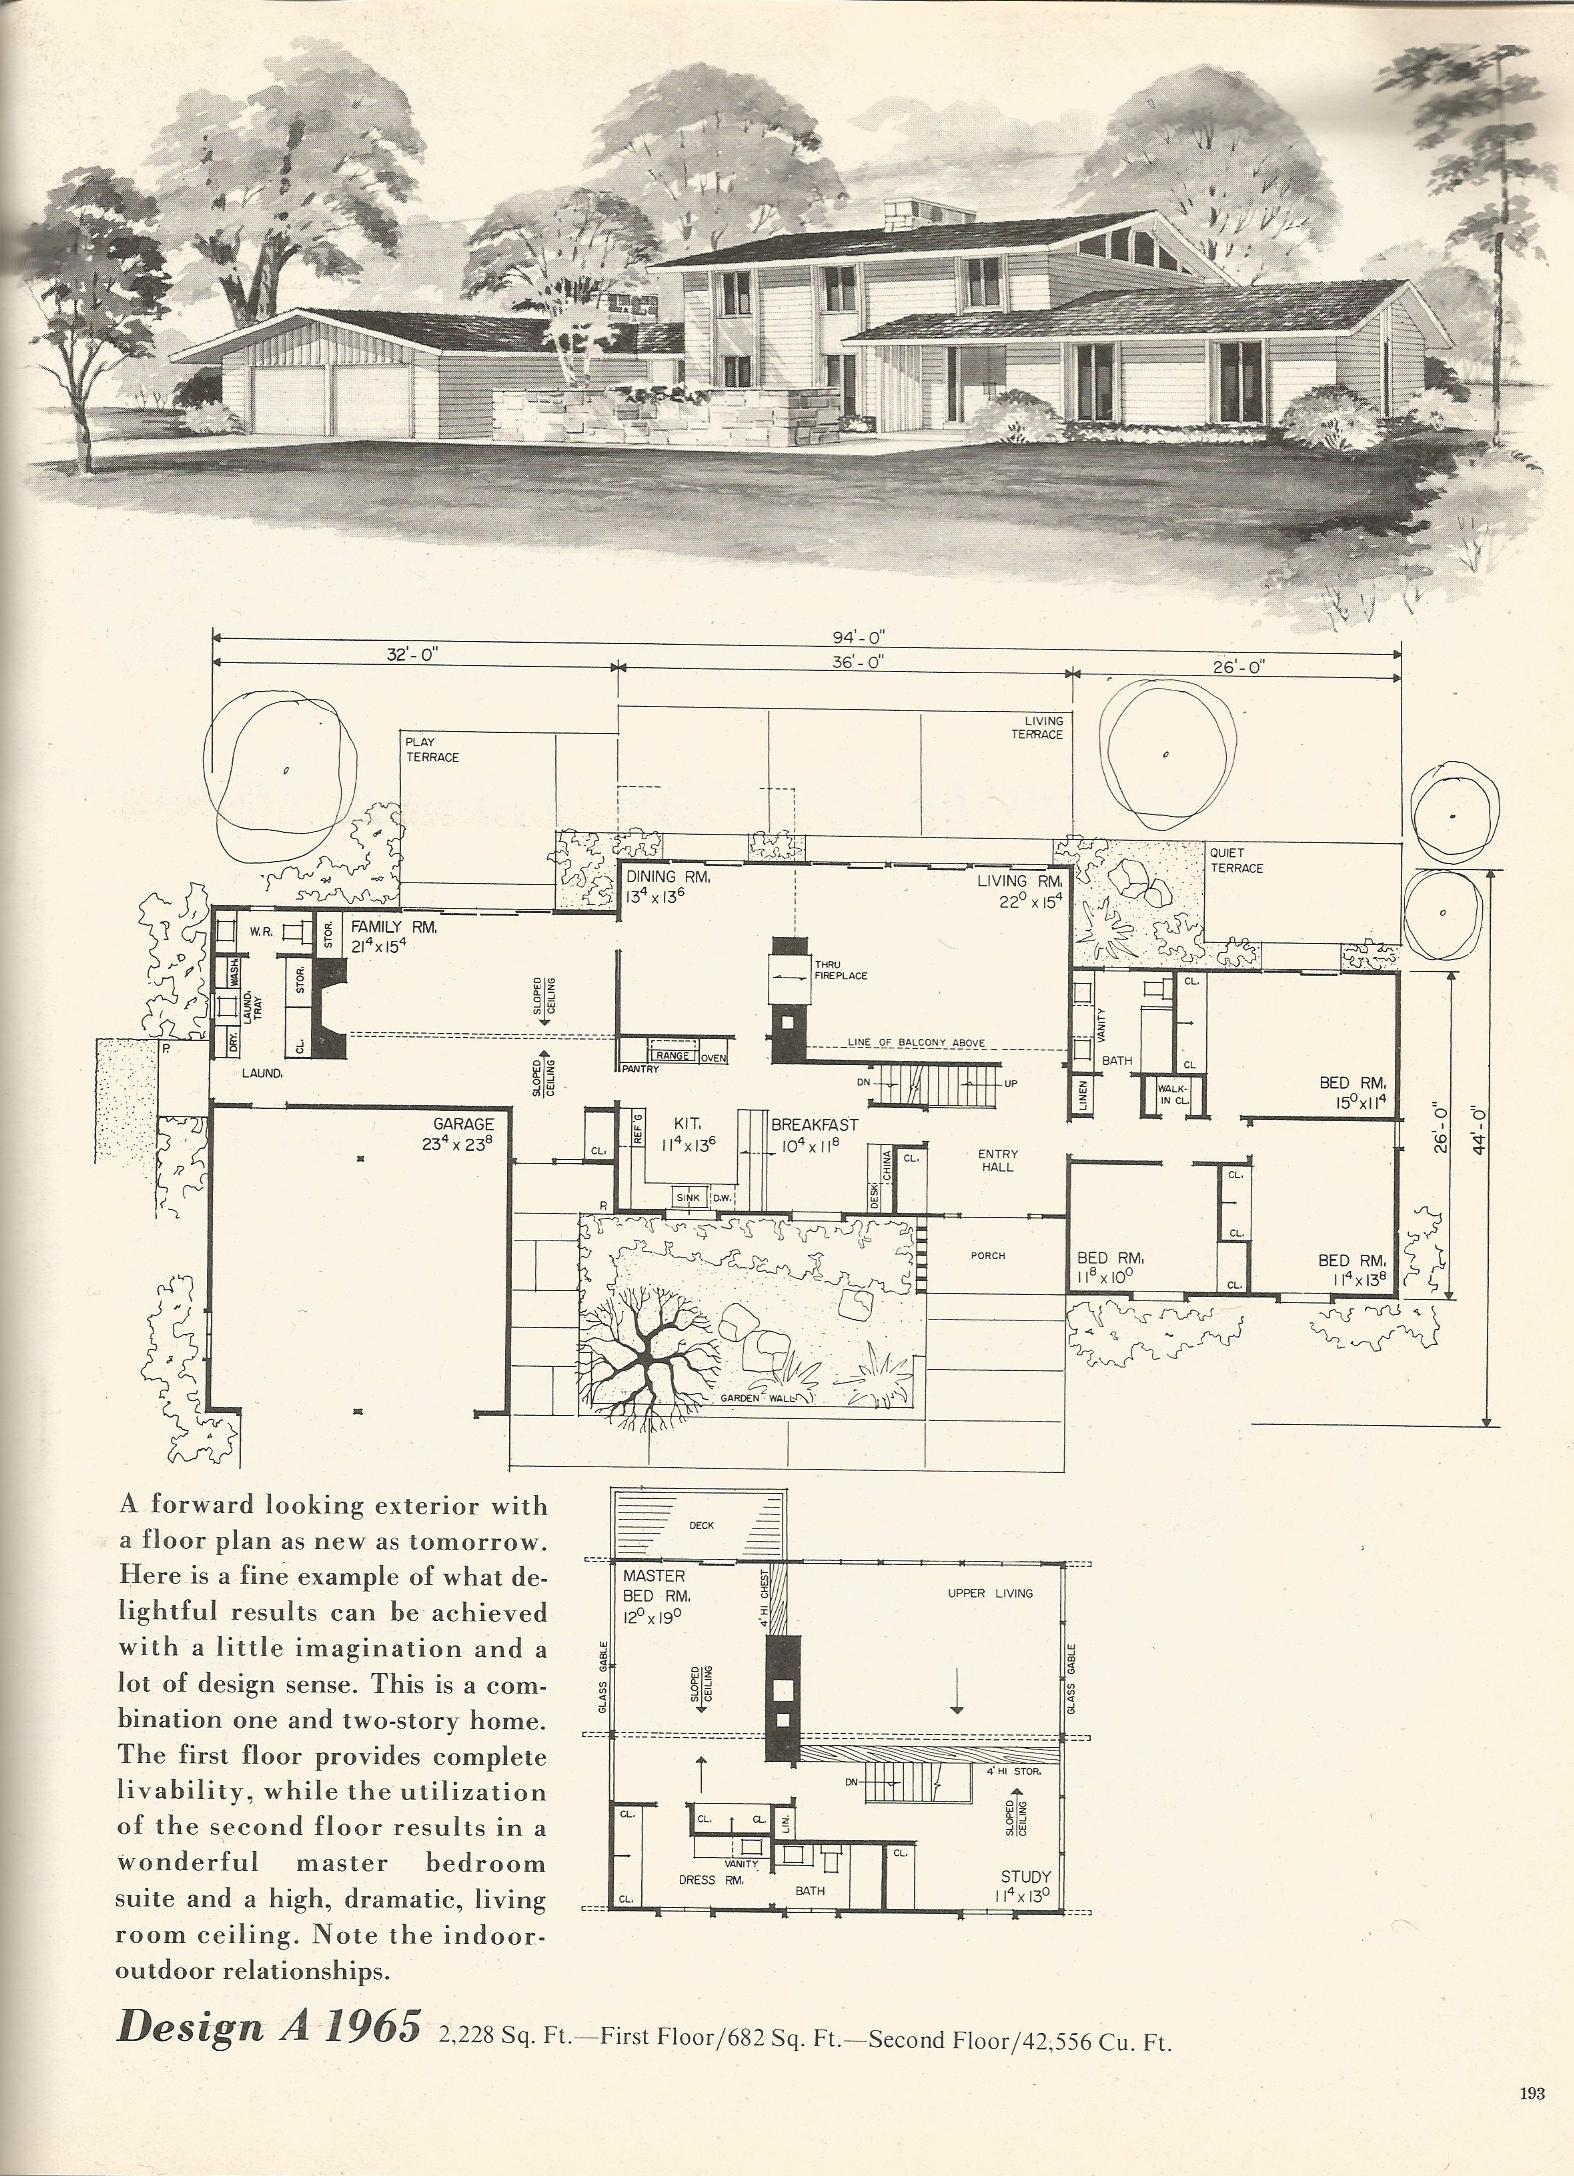 1970 house floor plans wood floors for Vintage floor plans